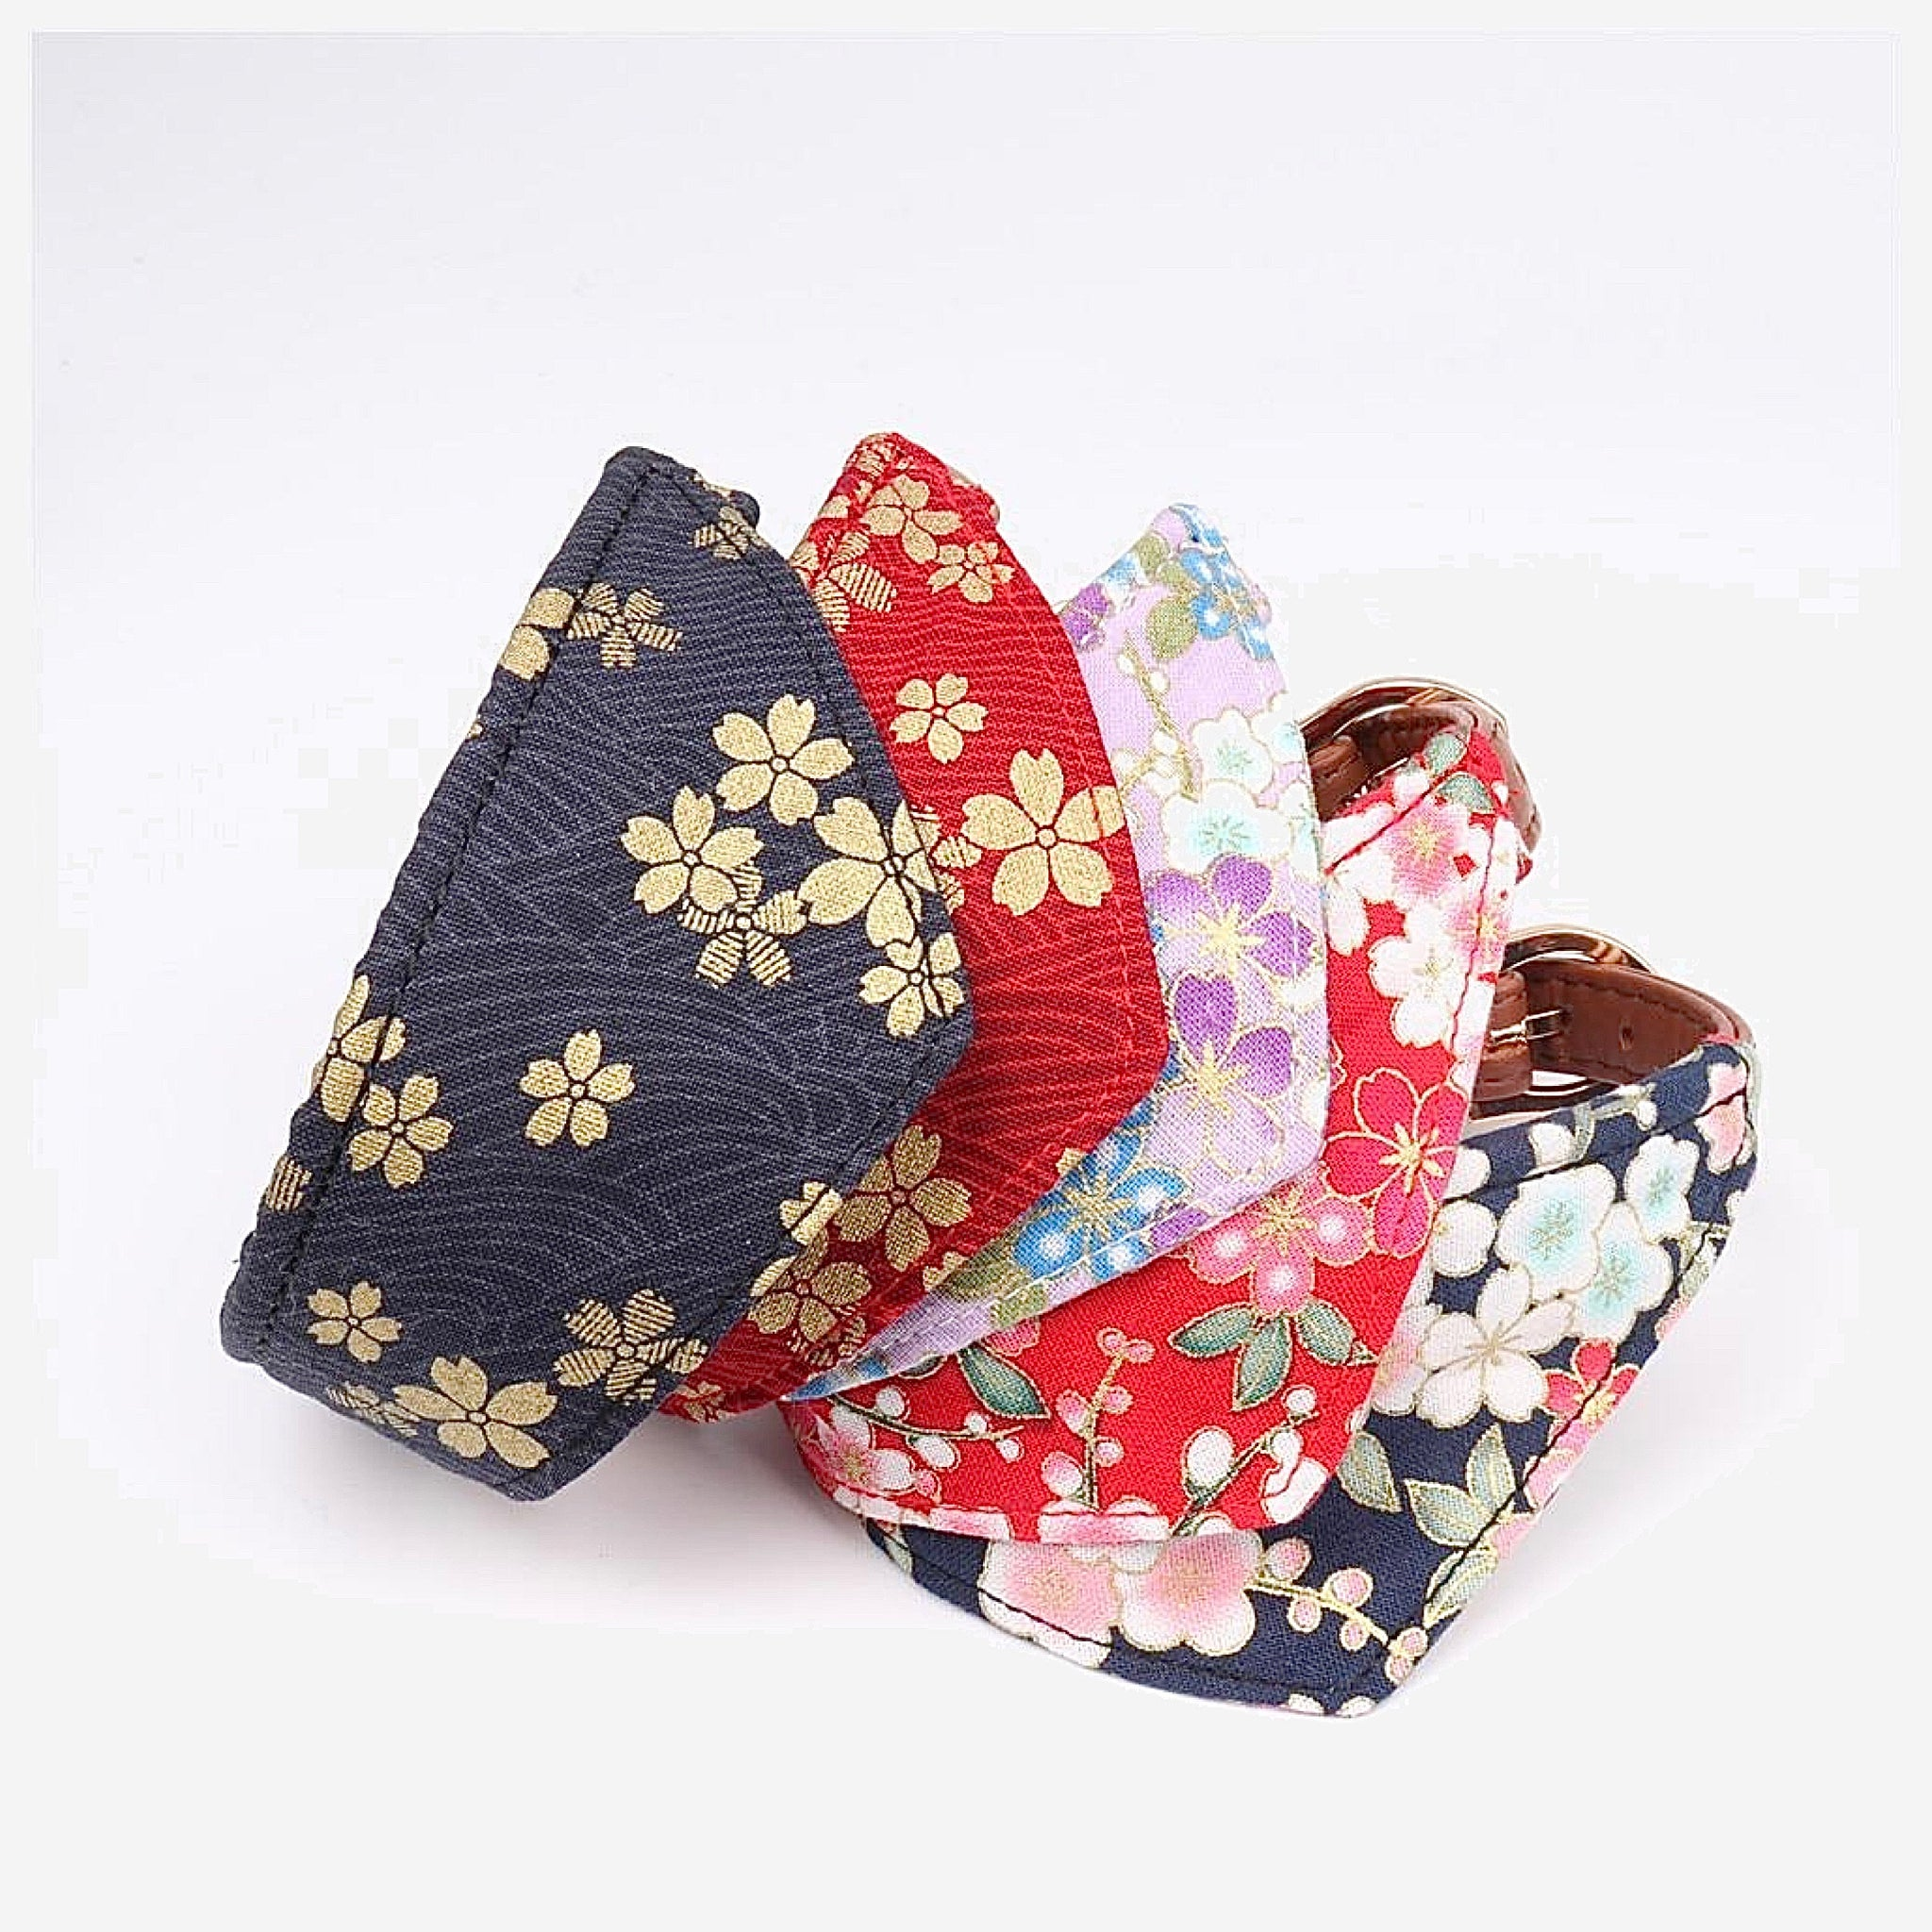 Japanese Bandana Pet Collar    Made of leather buckle design fine workmanship triangle scarf Japan pets supplies for cats and dogs Cherry Blossom Trending Style